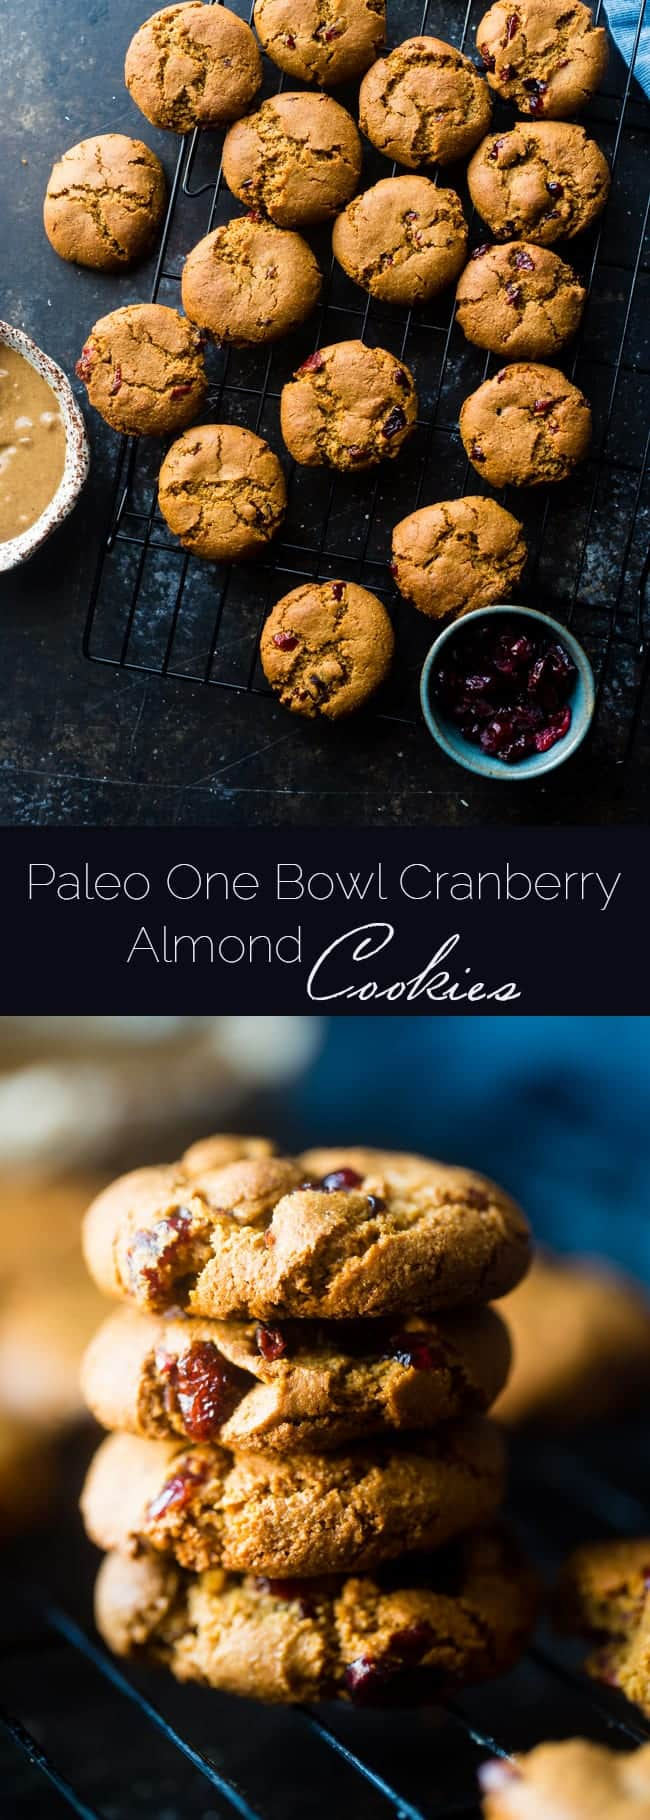 6 Ingredient Paleo Cranberry Almond Cookies - These easy, gluten free cranberry almond paleo cookies are so chewy and delicious! They're a healthier cookie for the Holidays with only 6 ingredients! | Foodfaithfitness.com | @FoodFaithFit